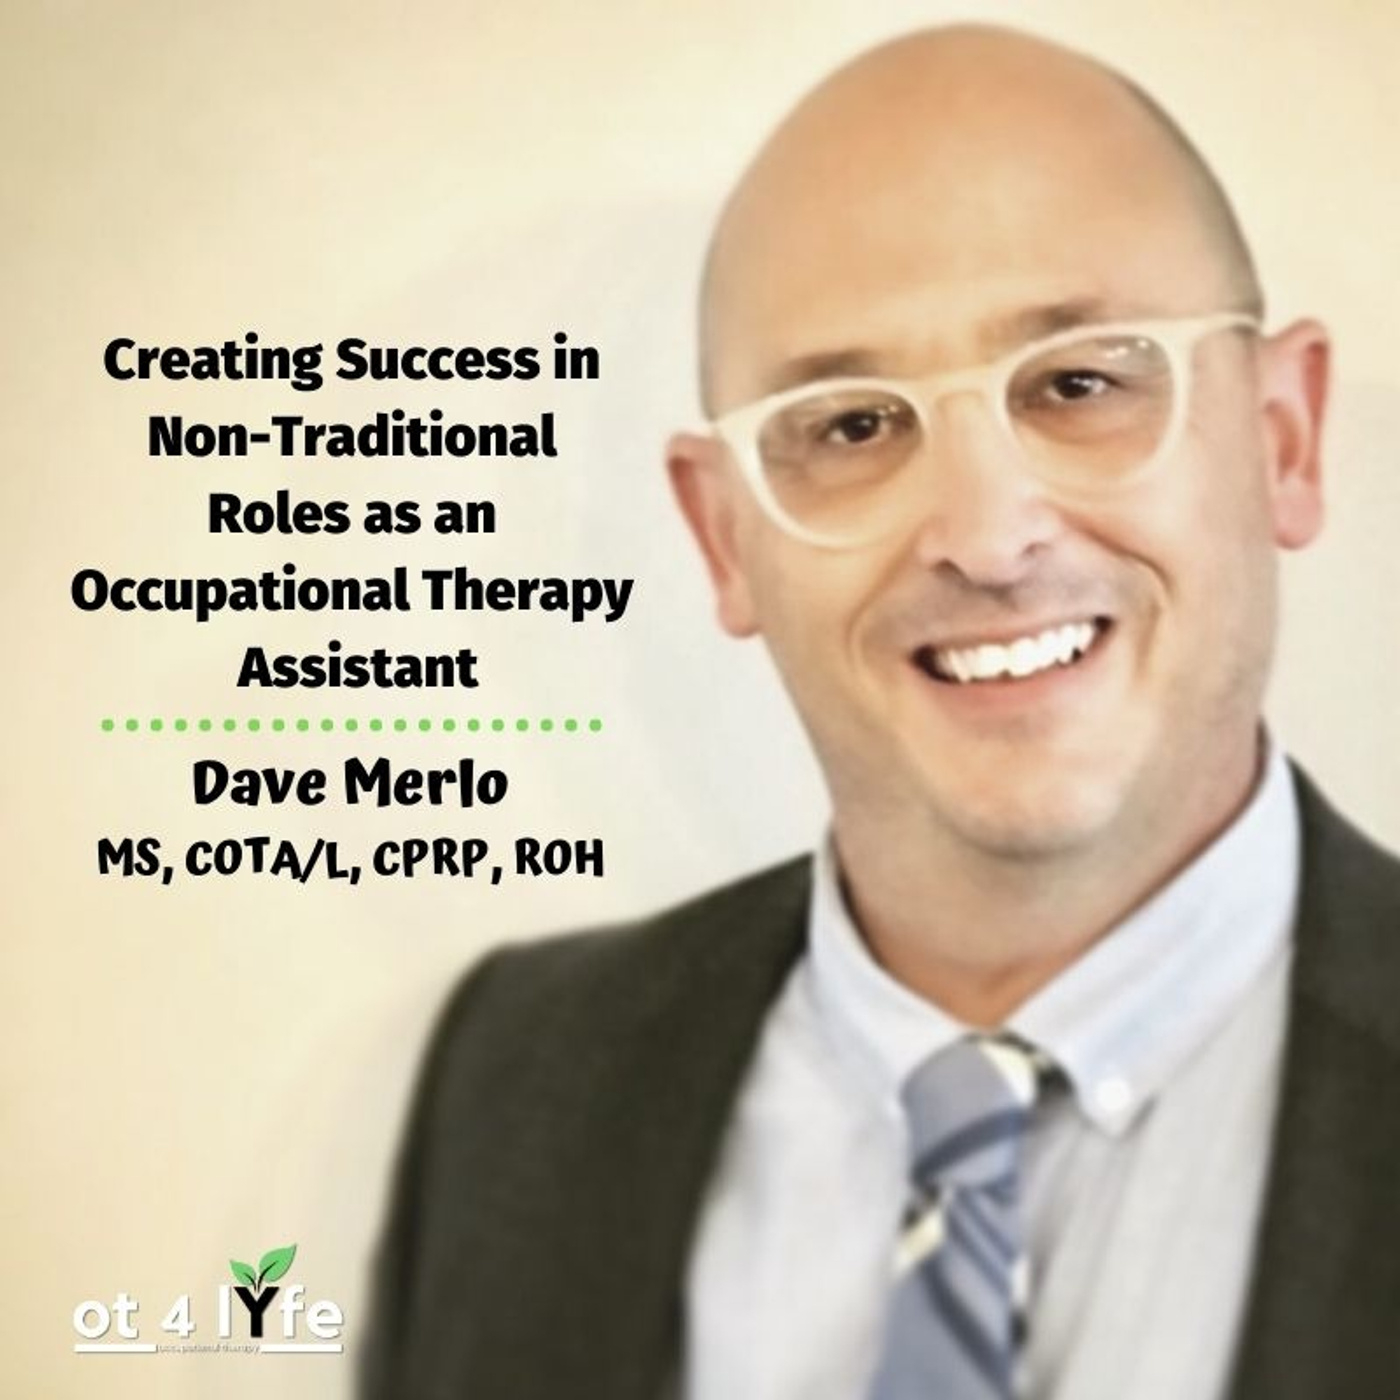 Creating Success in Non-Traditional Roles as an Occupational Therapy Assistant with Dave Merlo